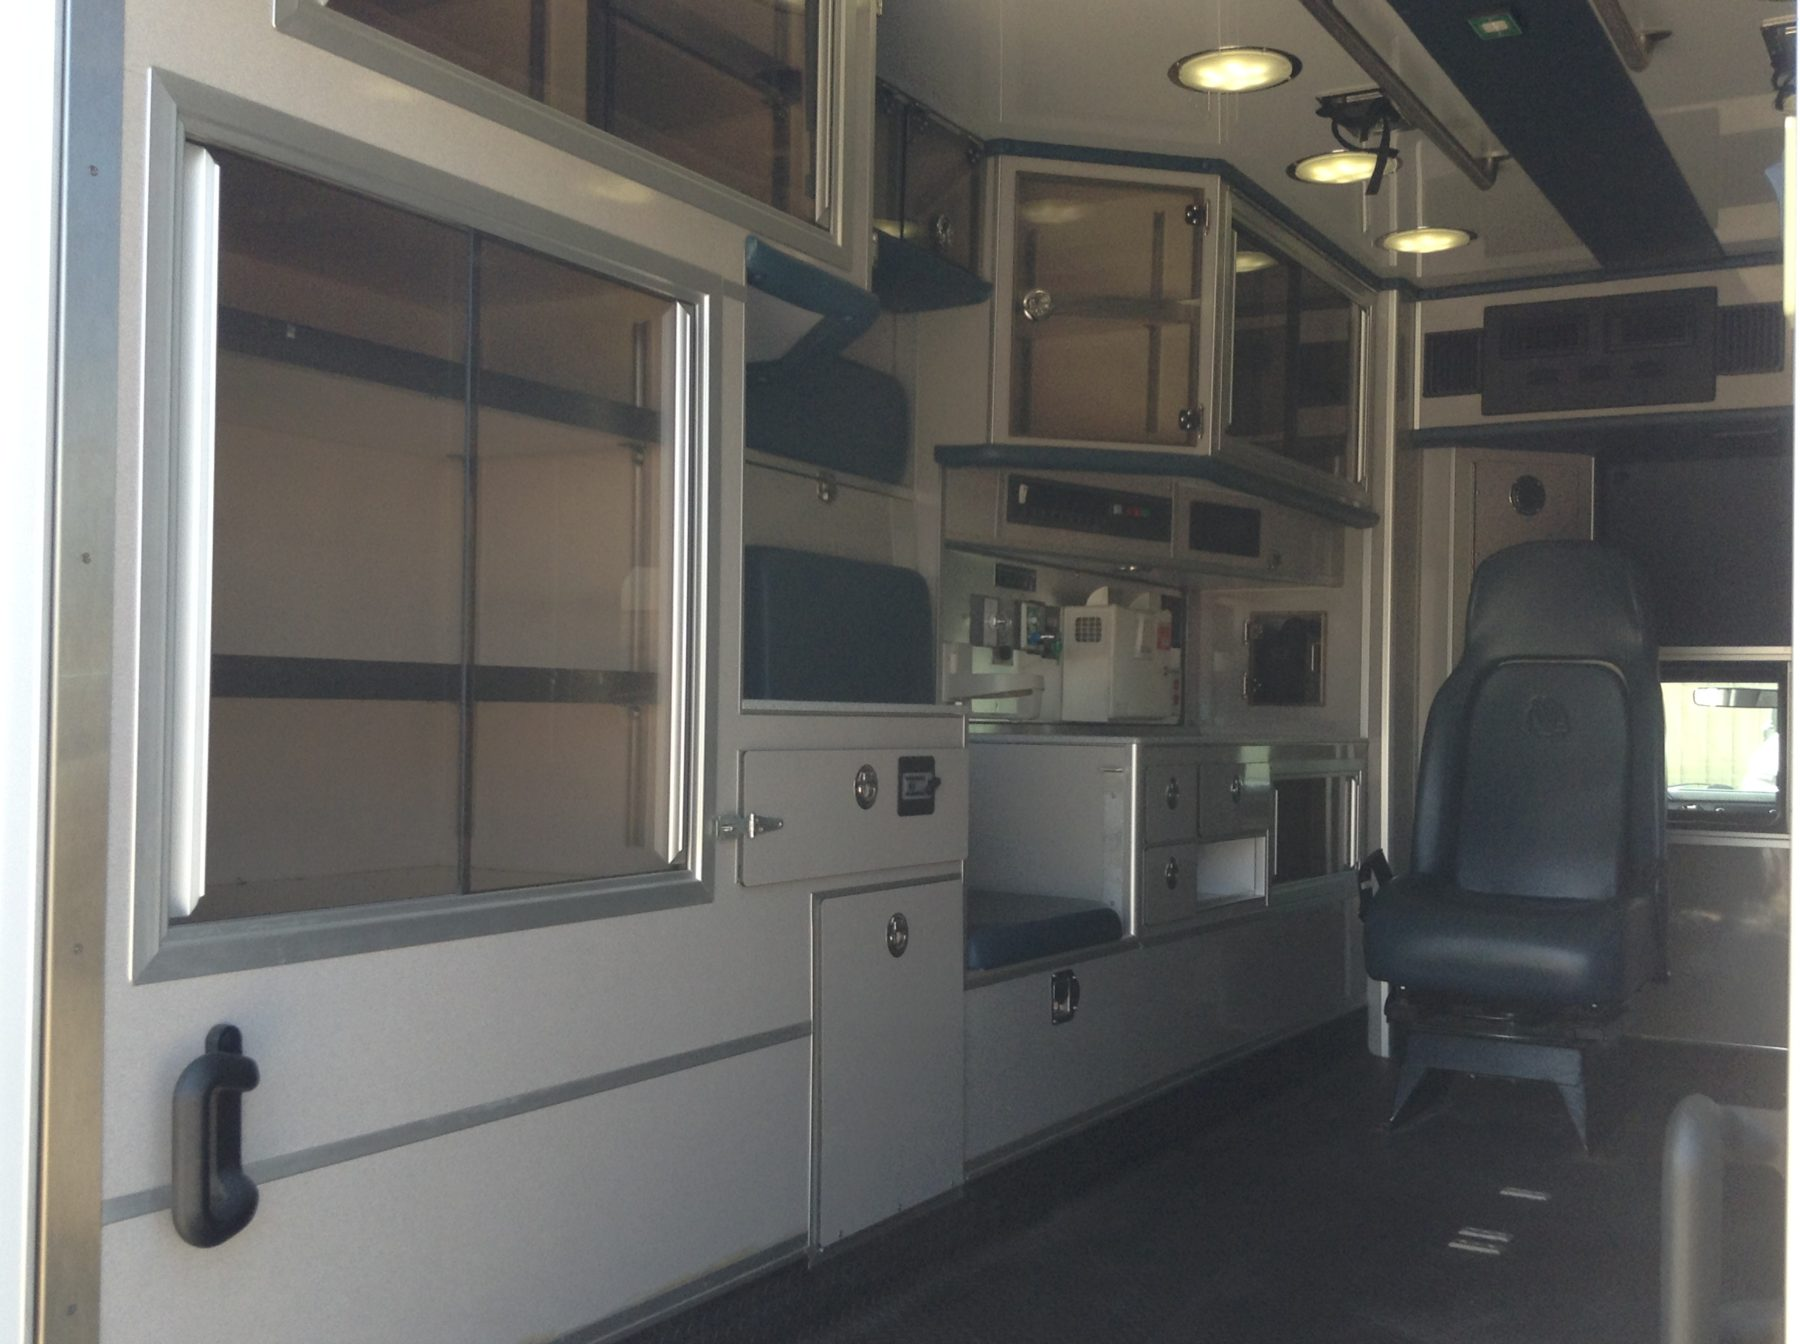 2011 Ford F450 4x4 Heavy Duty Ambulance For Sale – Picture 10